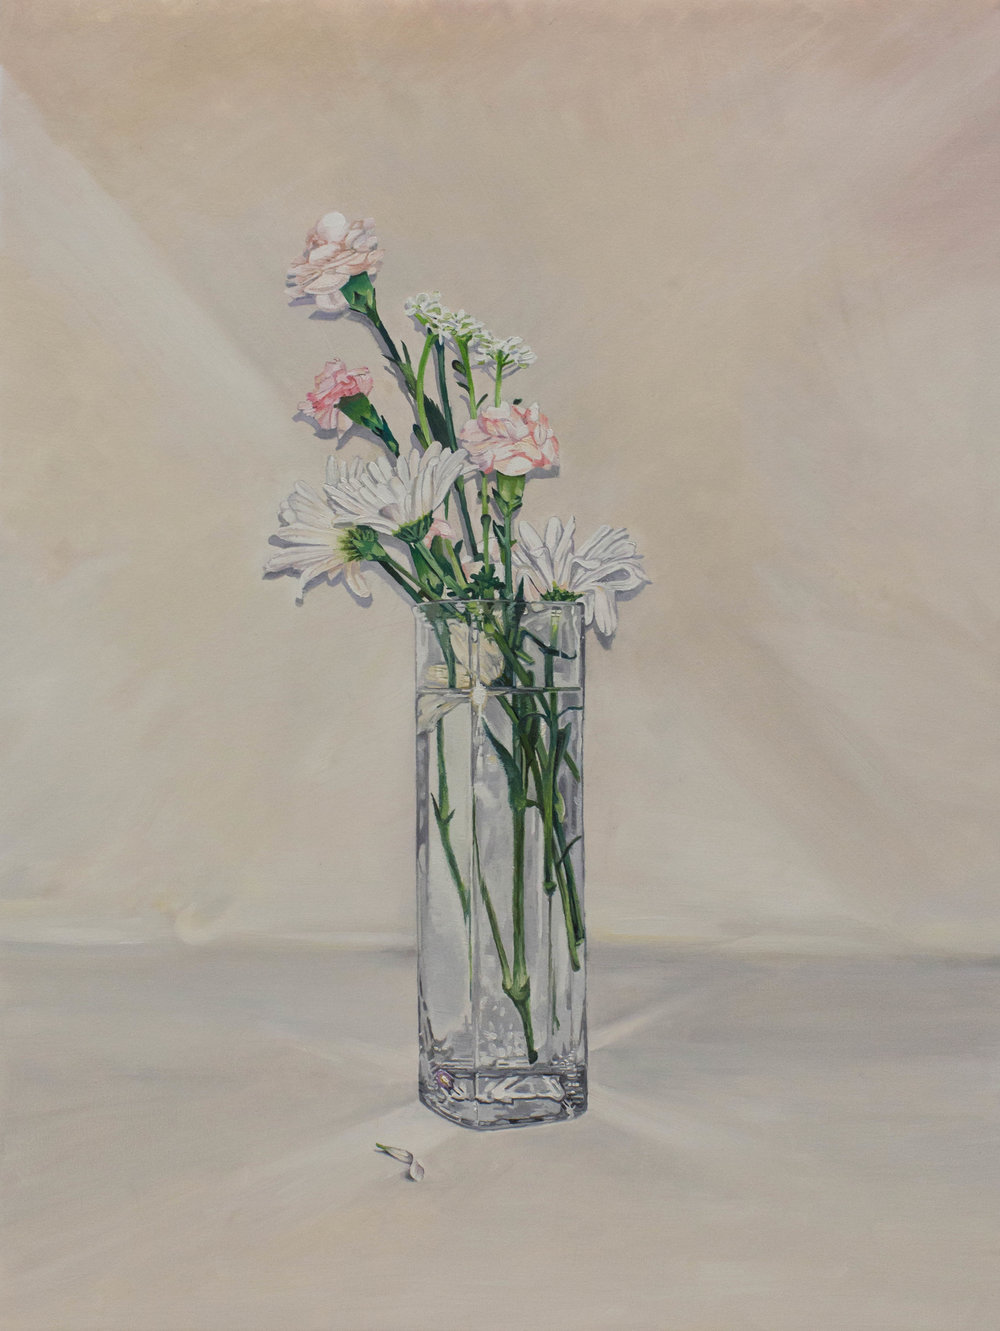 Flowers (for my mother), 2016, oil on canvas, 48 x 36 inches